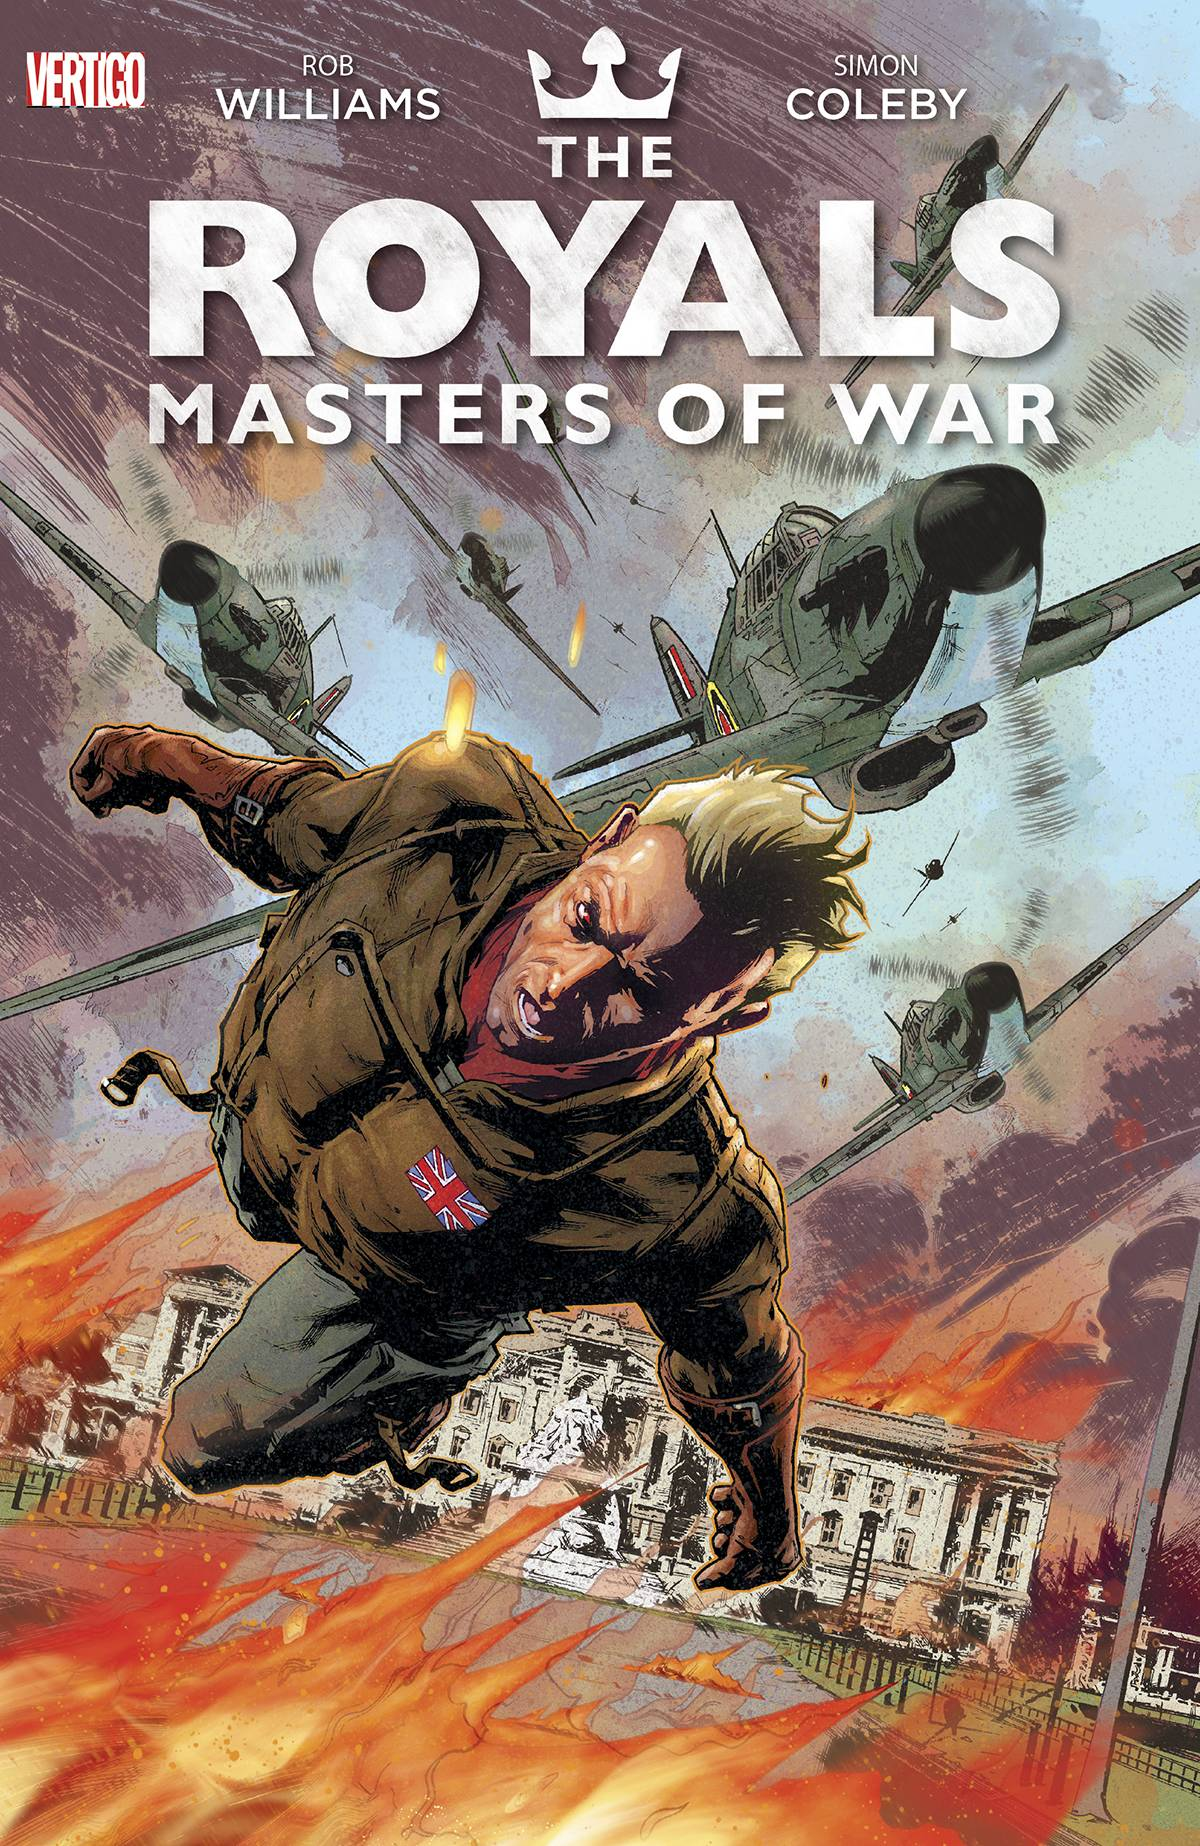 Simon Coleby Masters of War